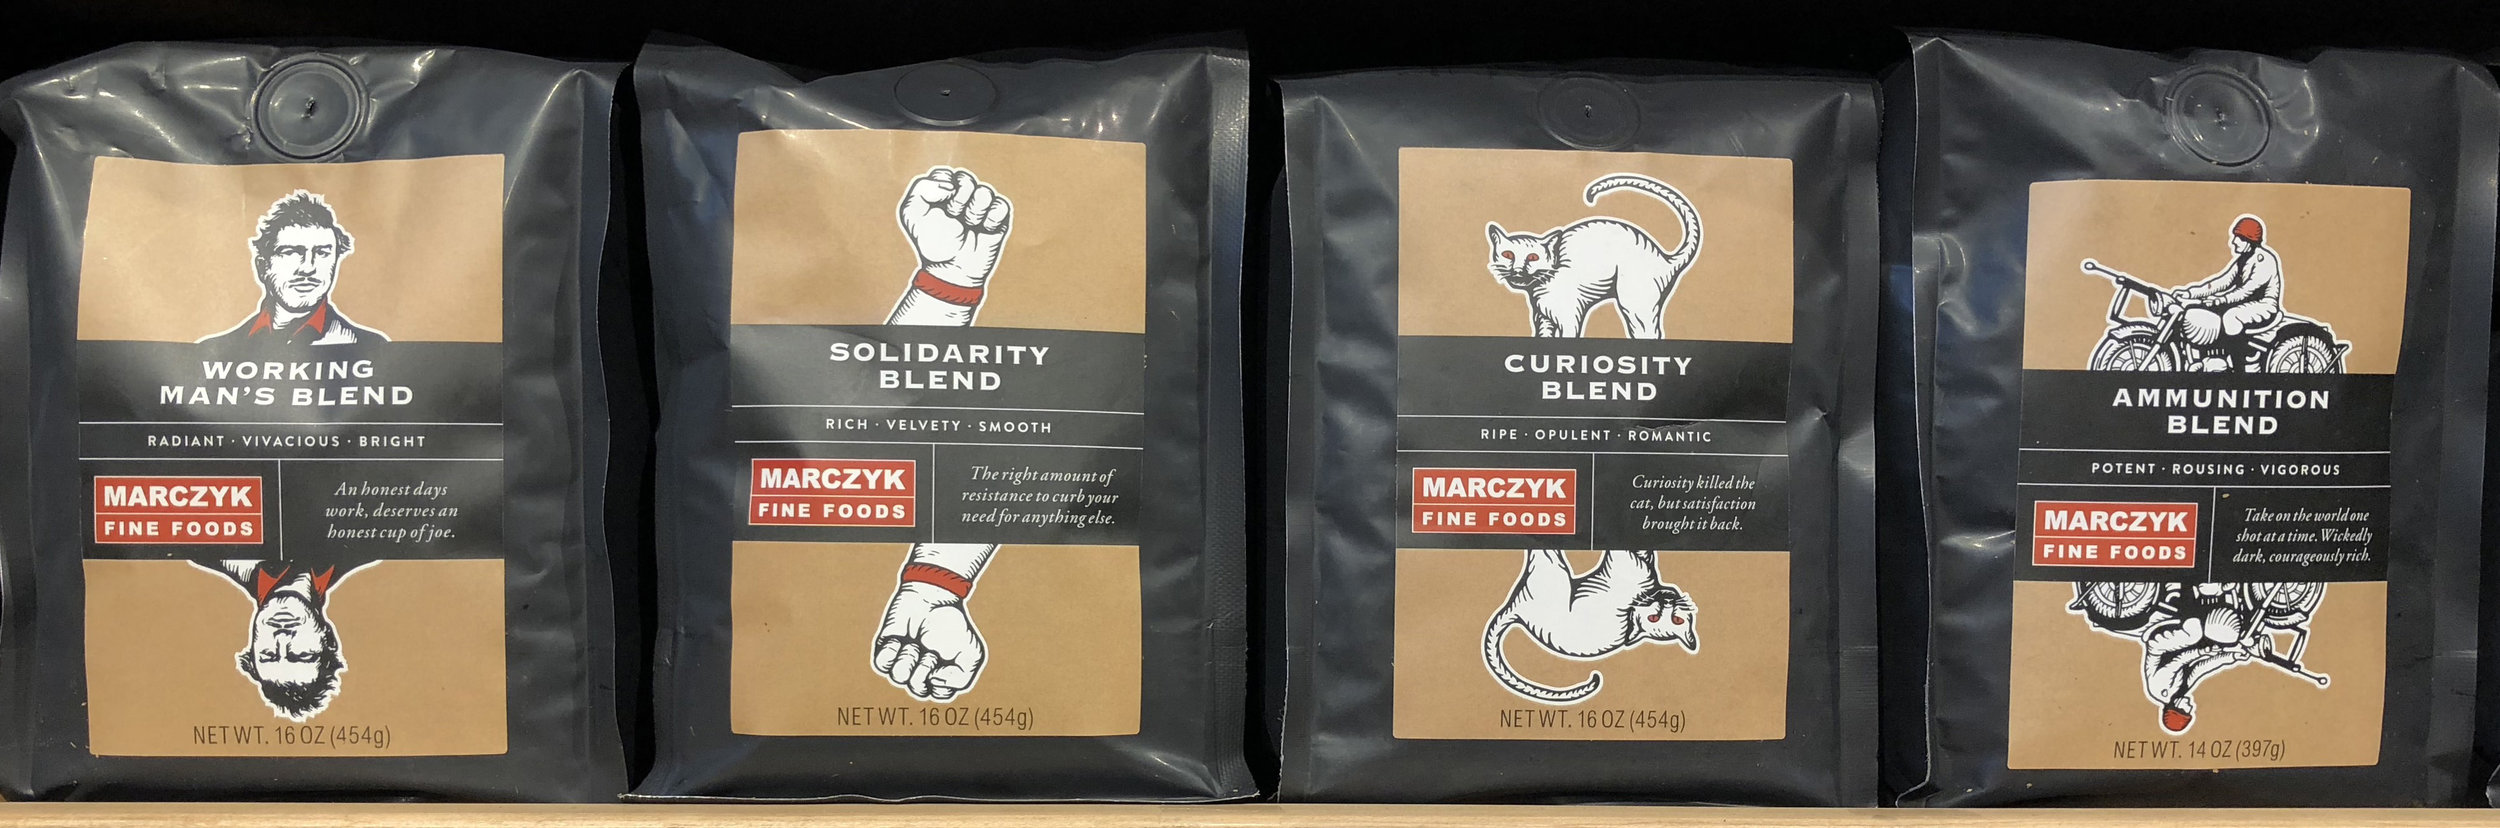 You want to taste some smooth coffee? Taste these. Seriously.